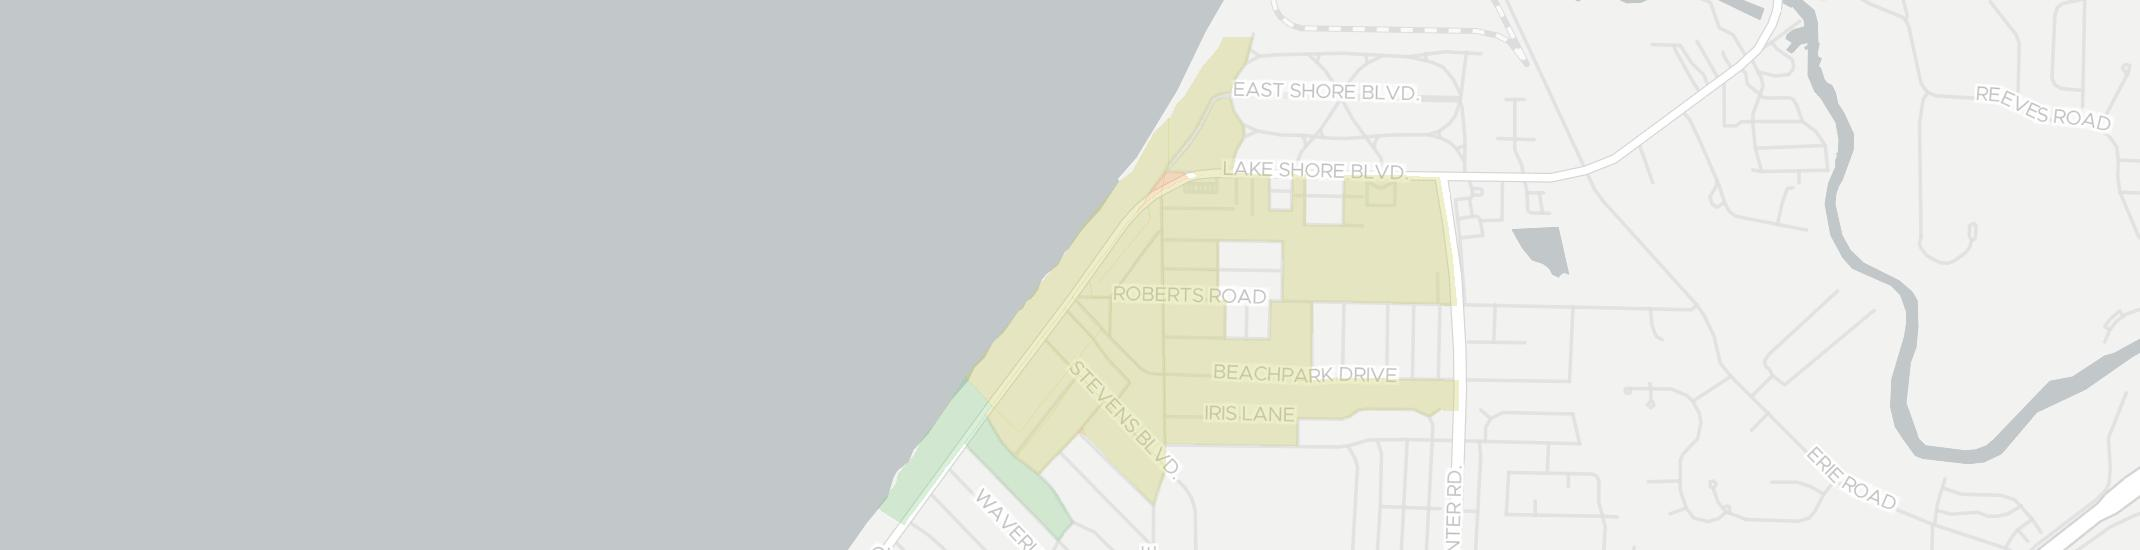 Lakeline Internet Competition Map. Click for interactive map.